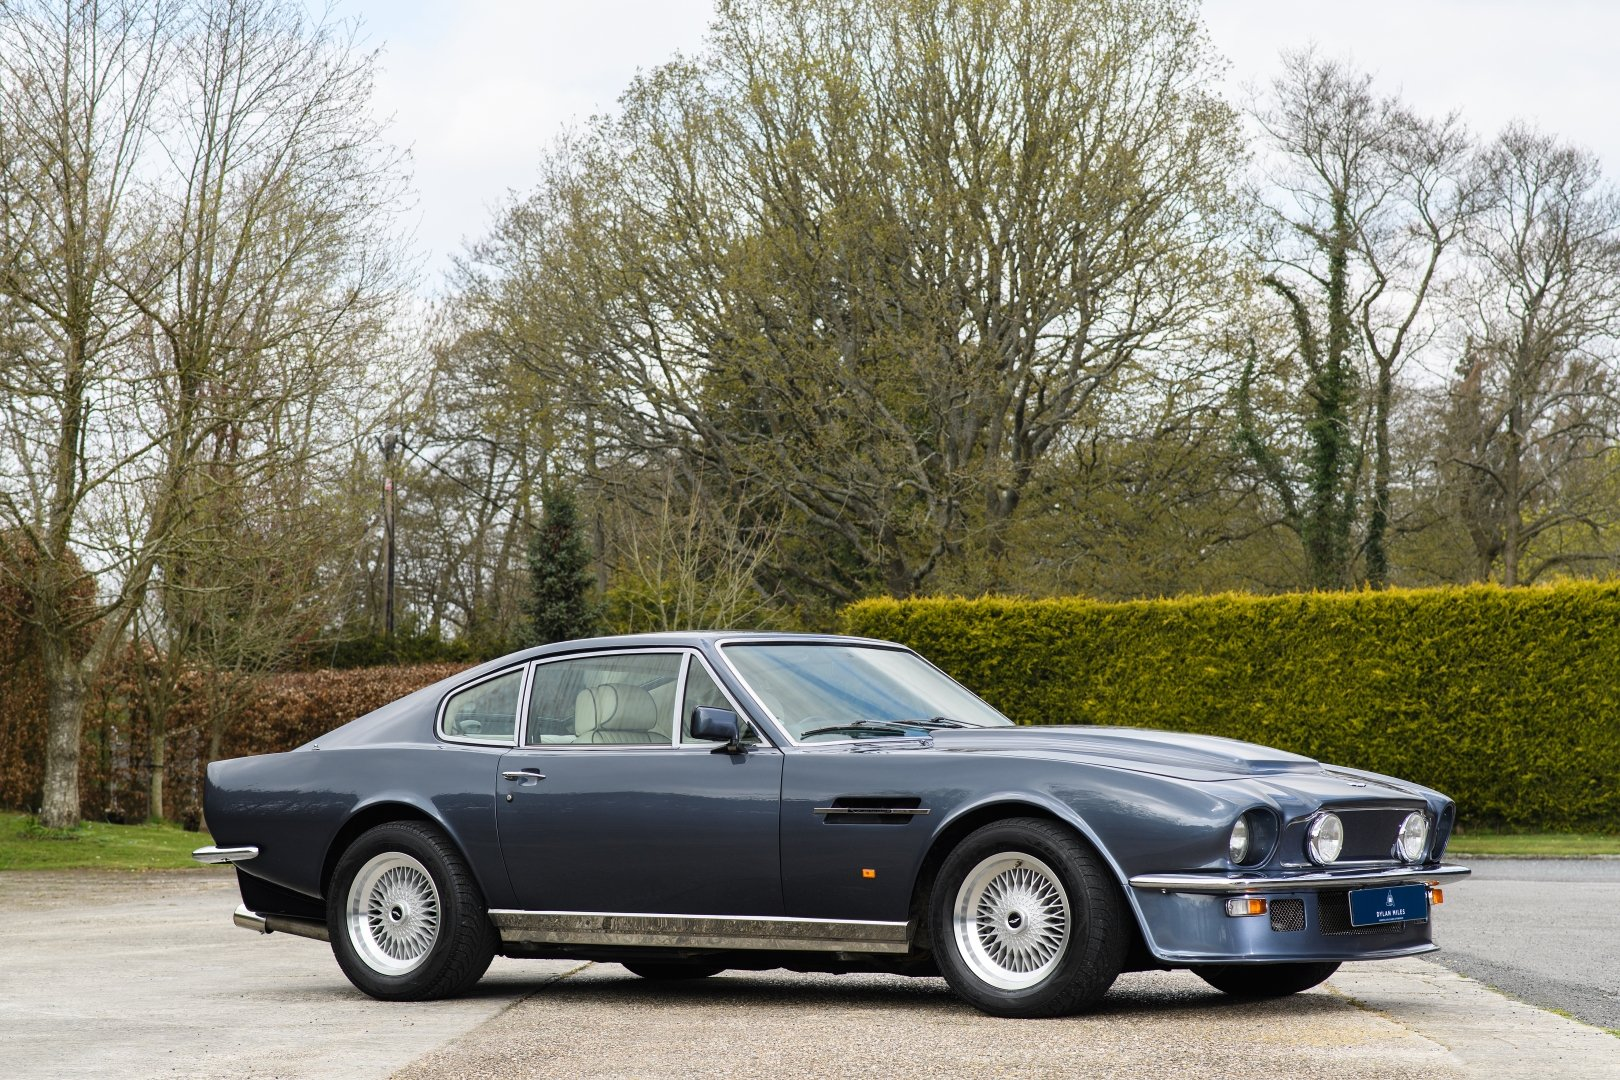 1974 Aston Martin V8 Series 3 Coupe - 'Oscar India' Spec For Sale (picture 1 of 6)